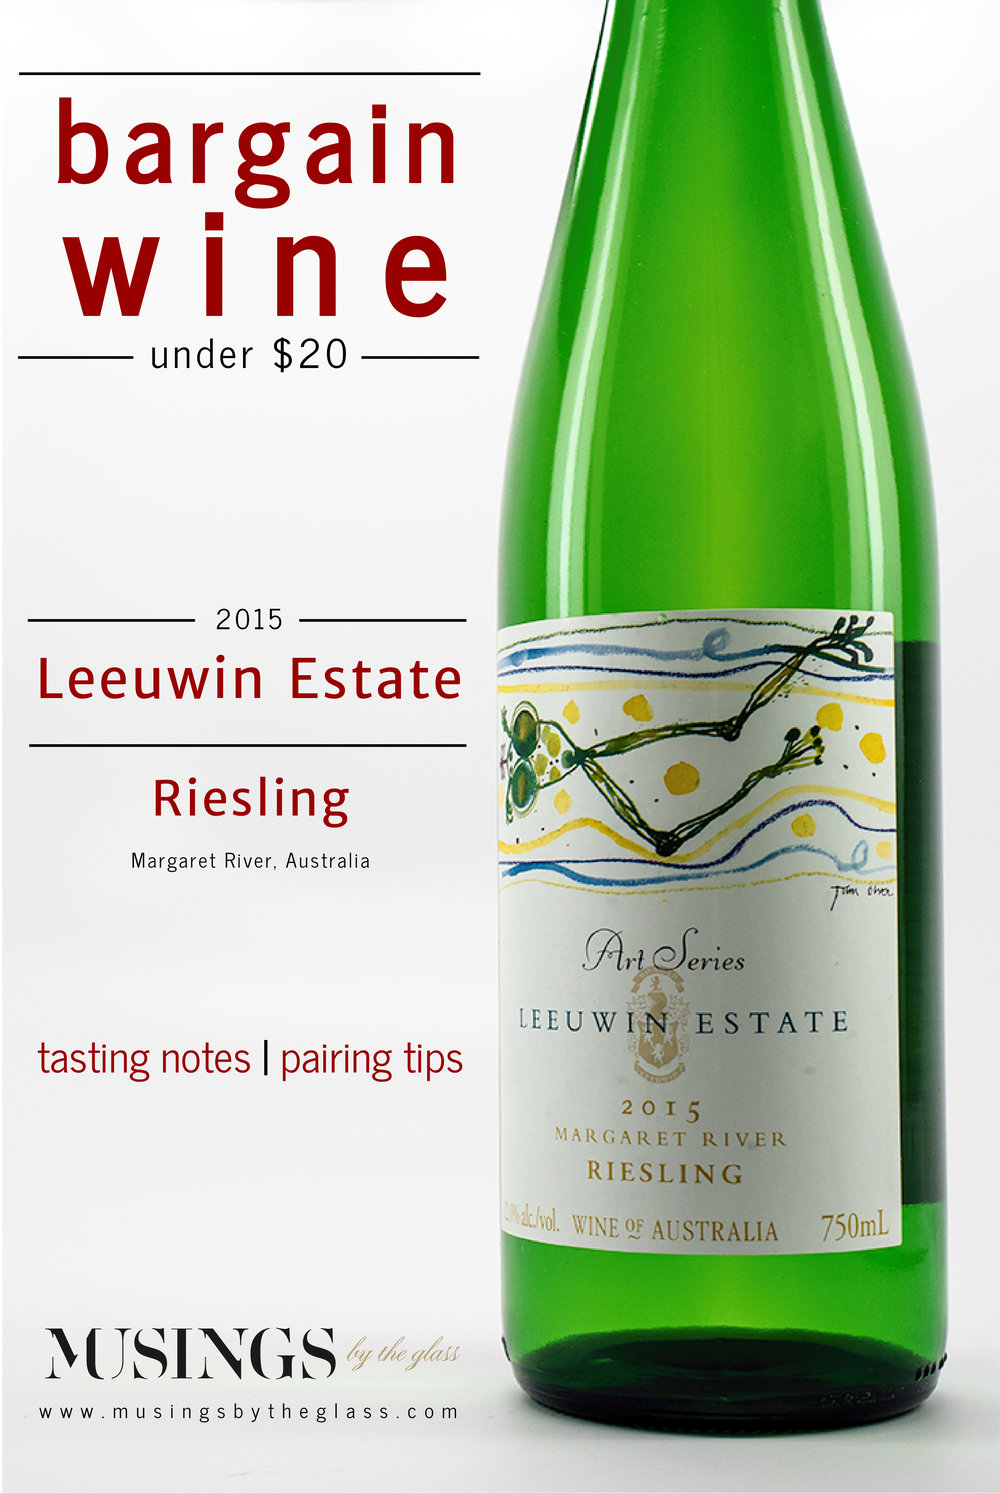 Musings by the Glass - Bargain Wines - 2015 Leeuwin Estate Art Series Riesling Margaret River Australia White Wine